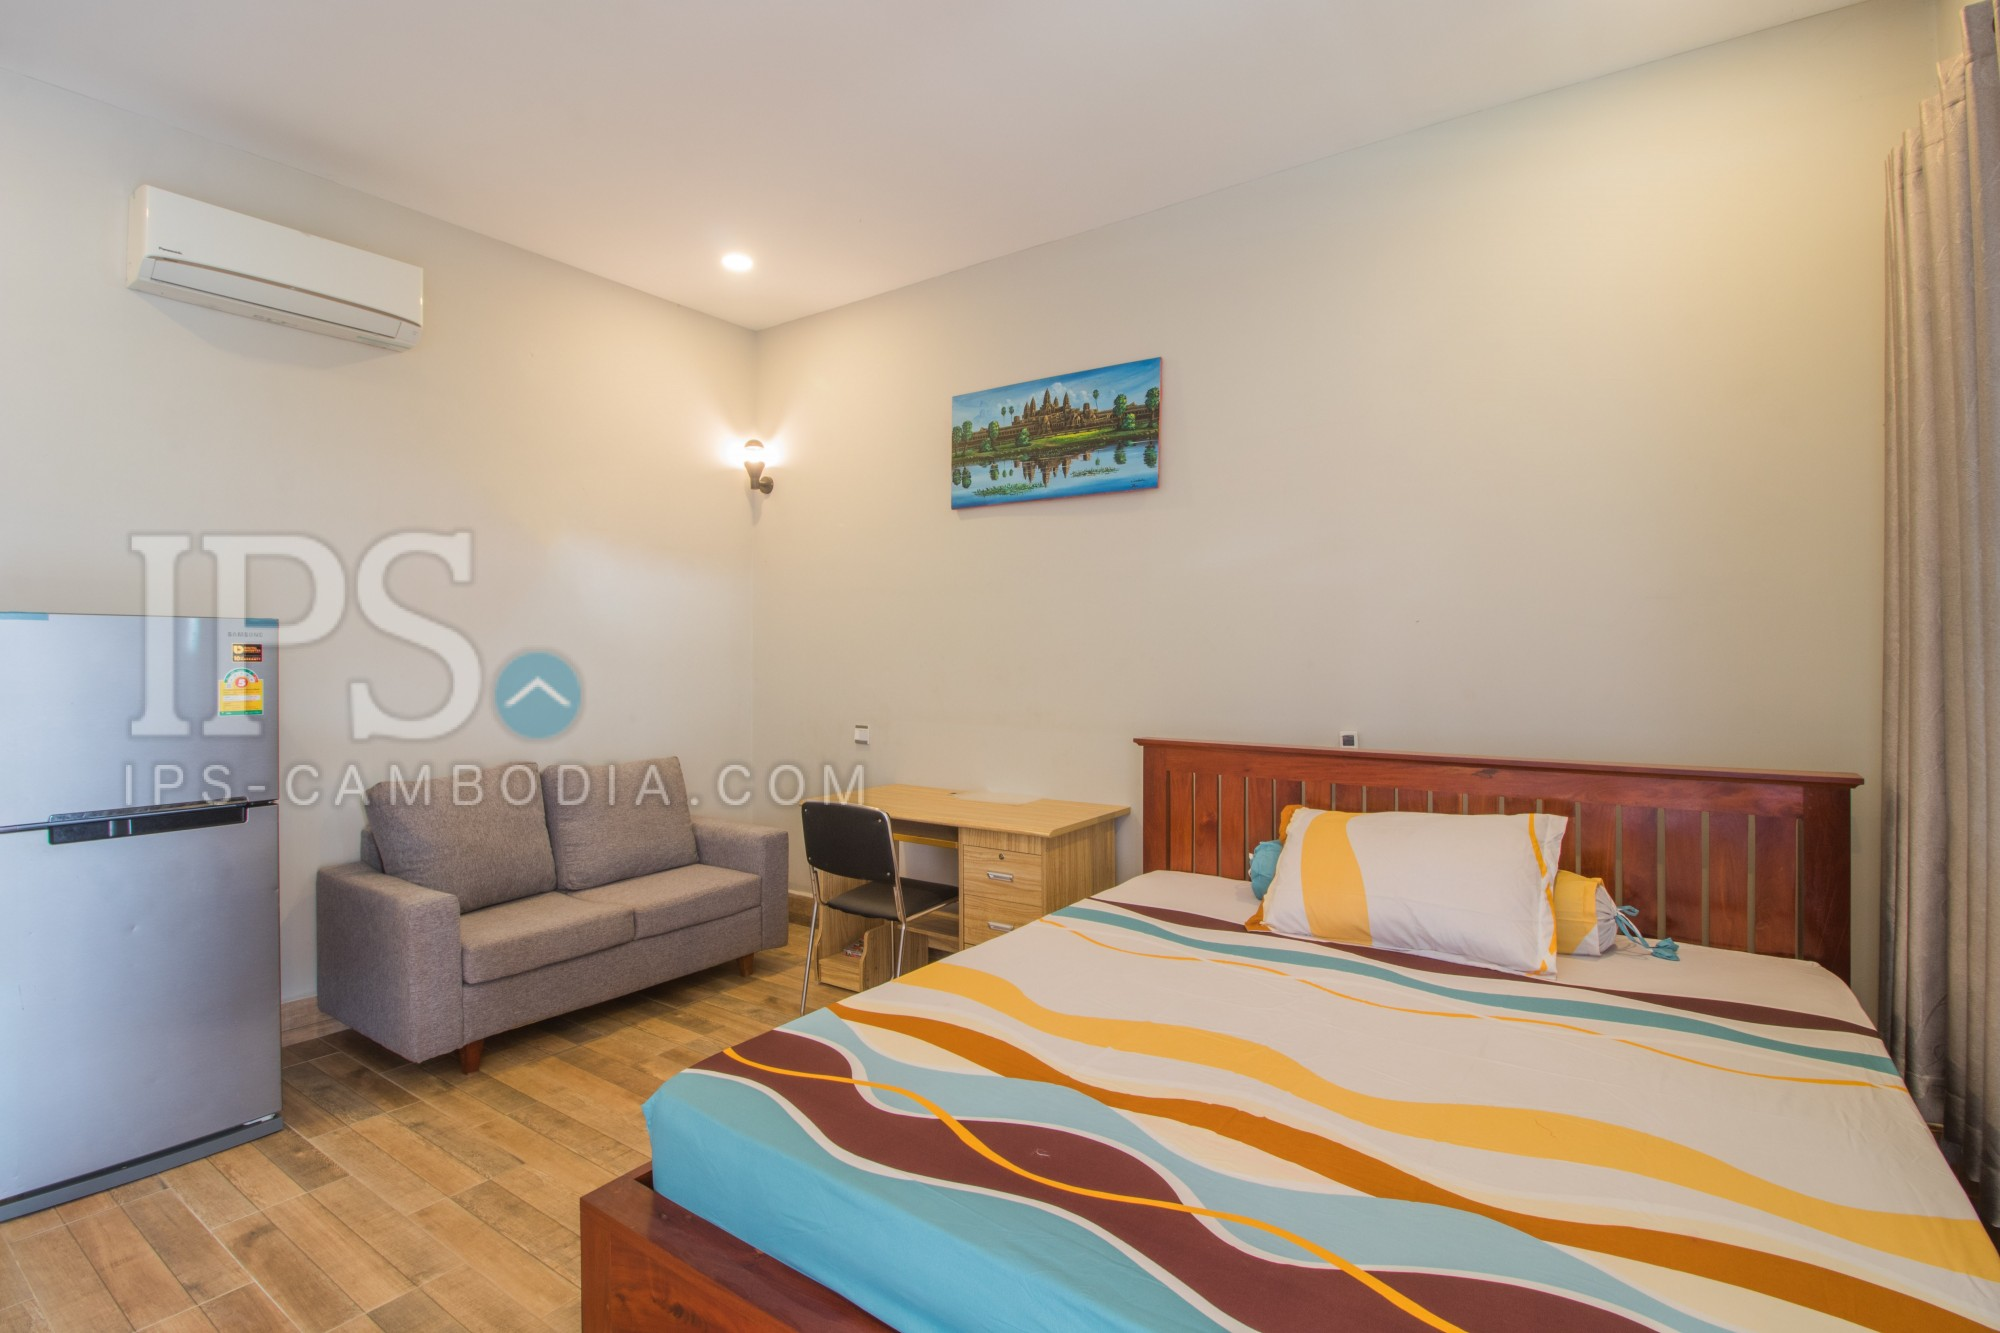 1 Bed Studio Apartment For Rent - Night Market Area, Siem Reap